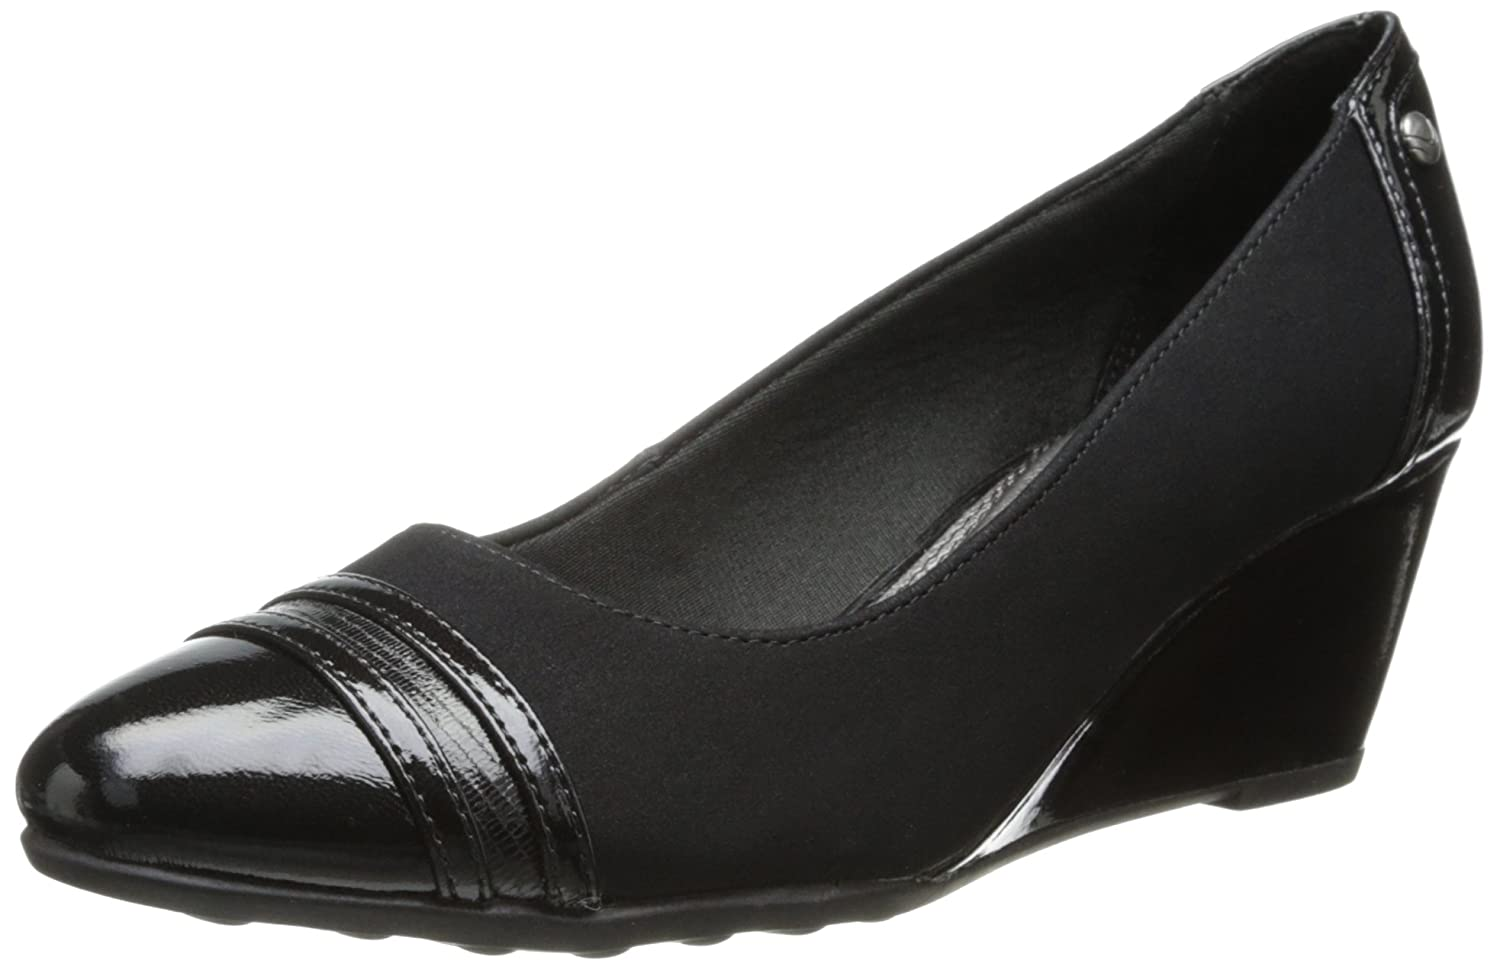 LifeStride Frauen Julianna Runder Zeh Pumps mit Keilabsatz